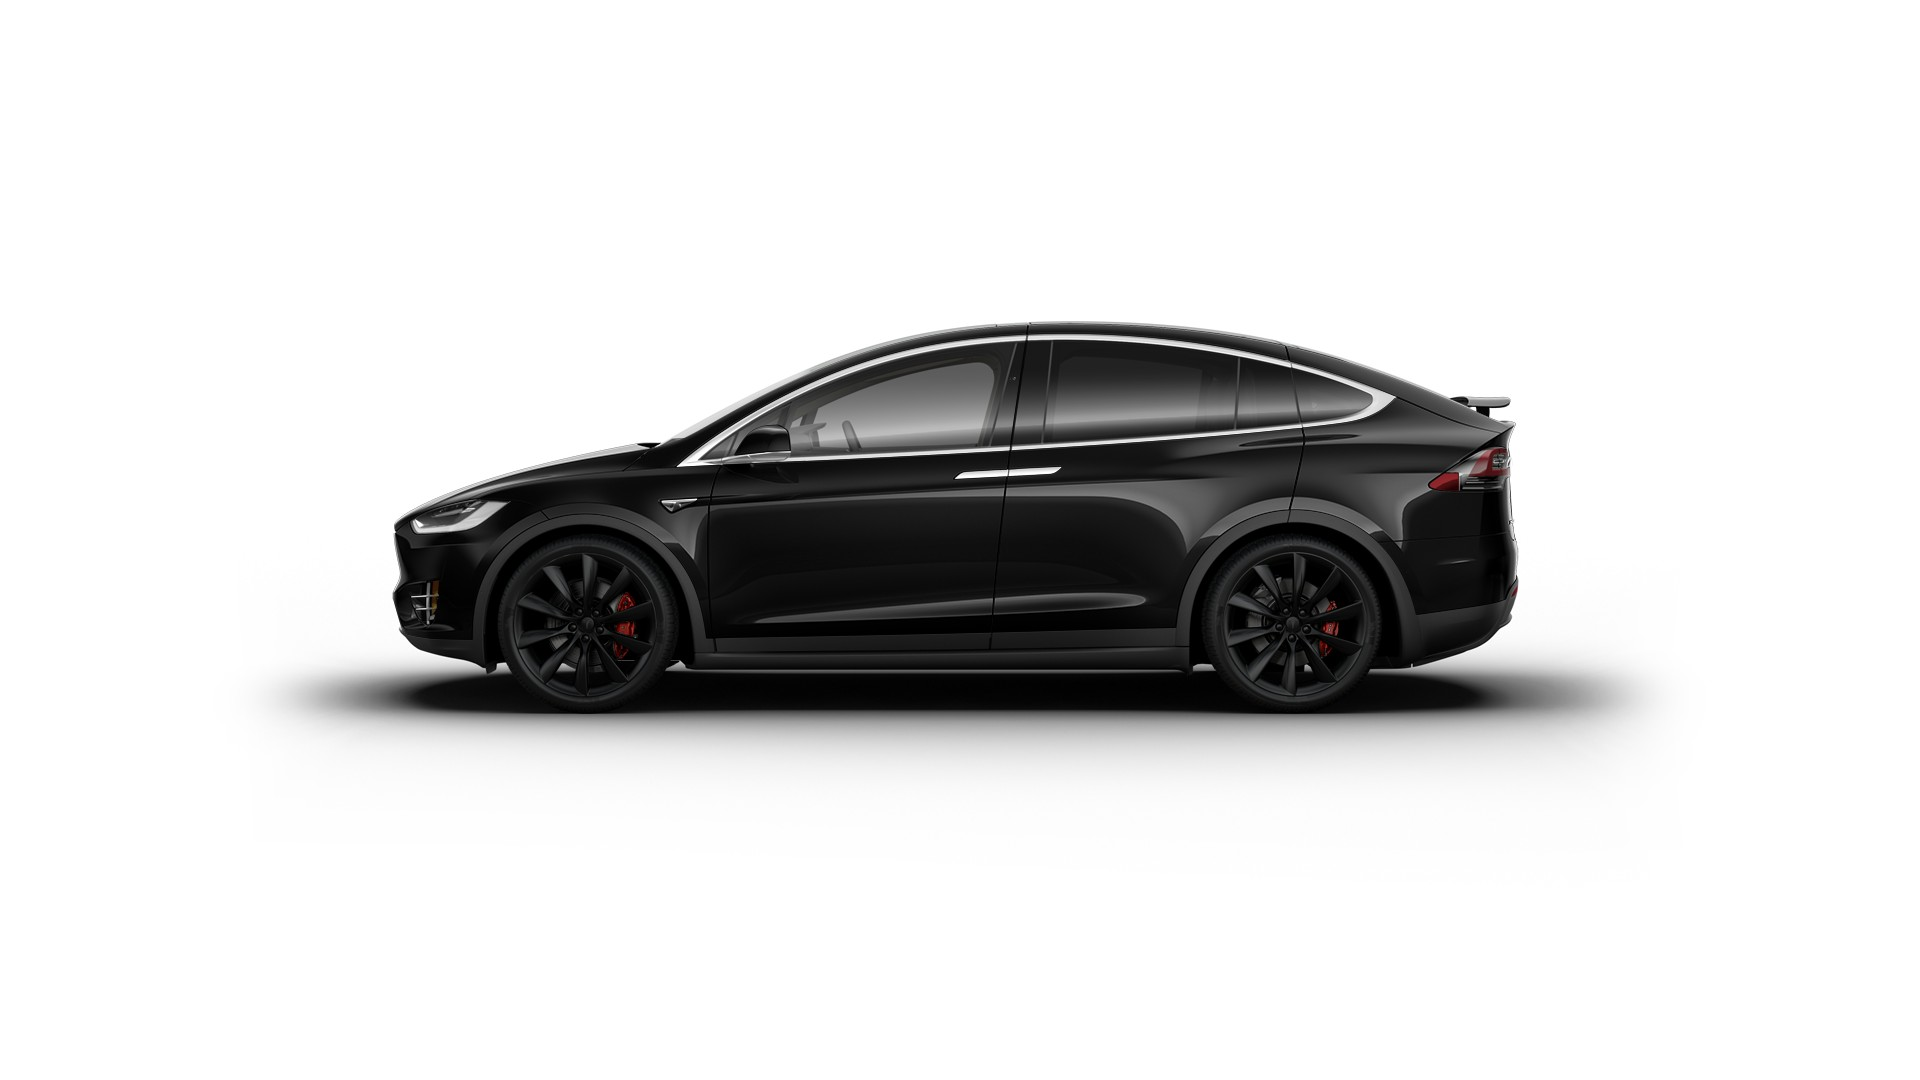 2017 tesla model x p100d obsidian black metallic paint vin 5yjxdce48hf065935 for sale in new. Black Bedroom Furniture Sets. Home Design Ideas